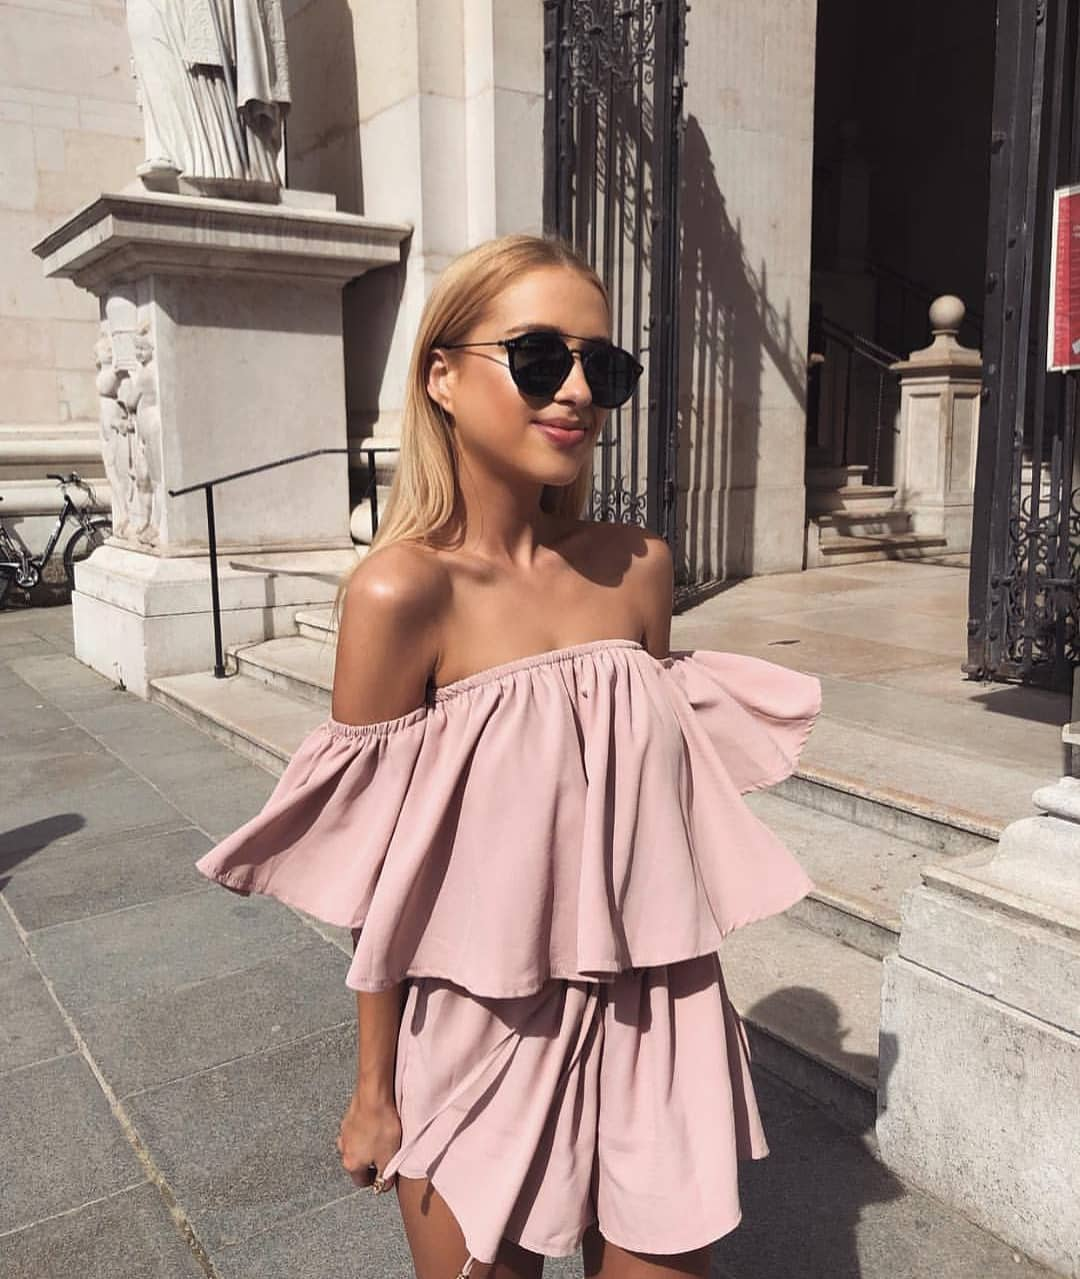 Italian Lady Style For Summer: Blush Off Shoulder Ruffled Mini Dress 2019